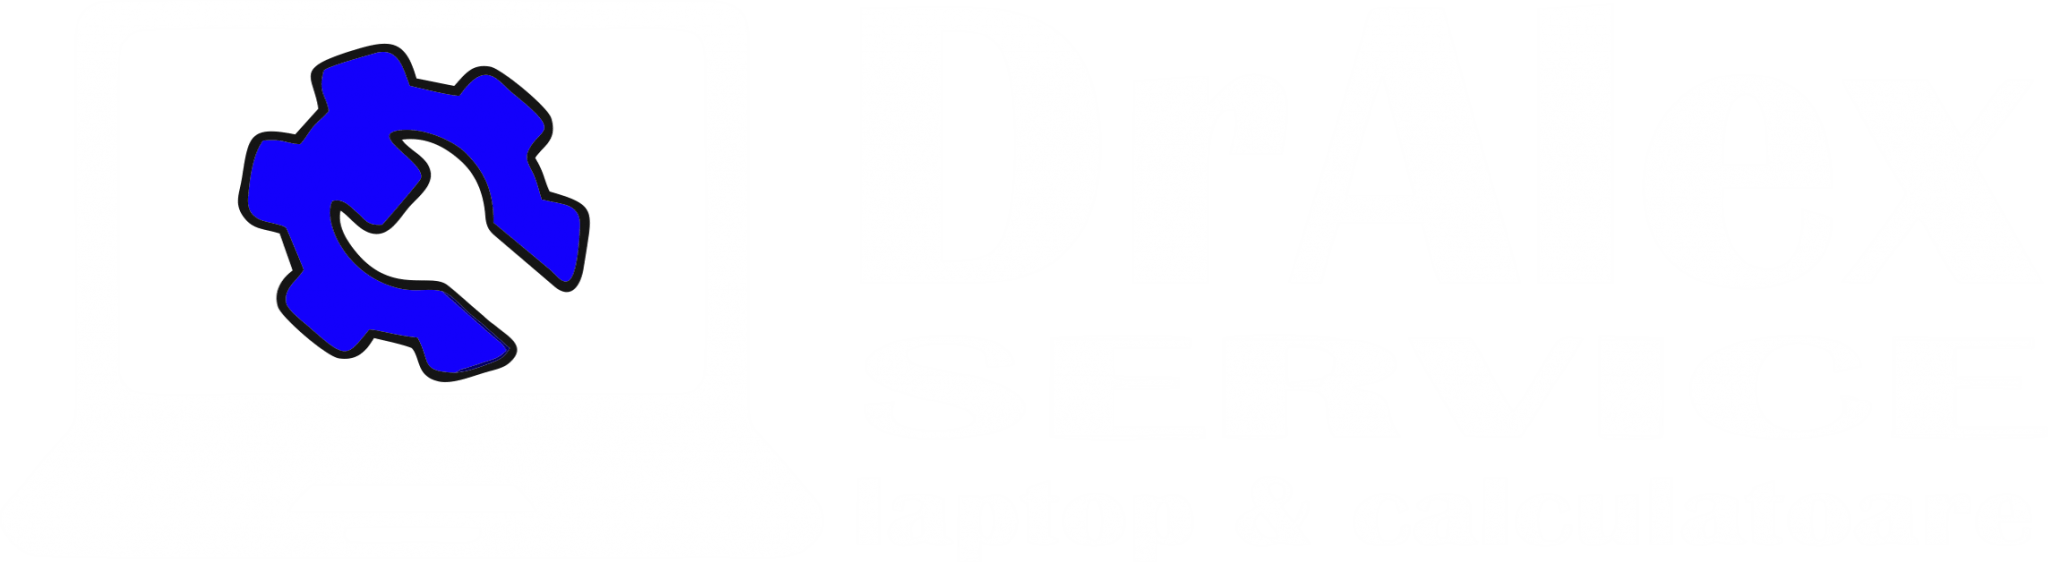 Service laptop & reparatii calculatoare Sector 6. Service Apple, Dell, HP, Lenovo, Asus, Acer, Toshiba. Instalare Windows. DIAGNOSTICARE GRATUITA!